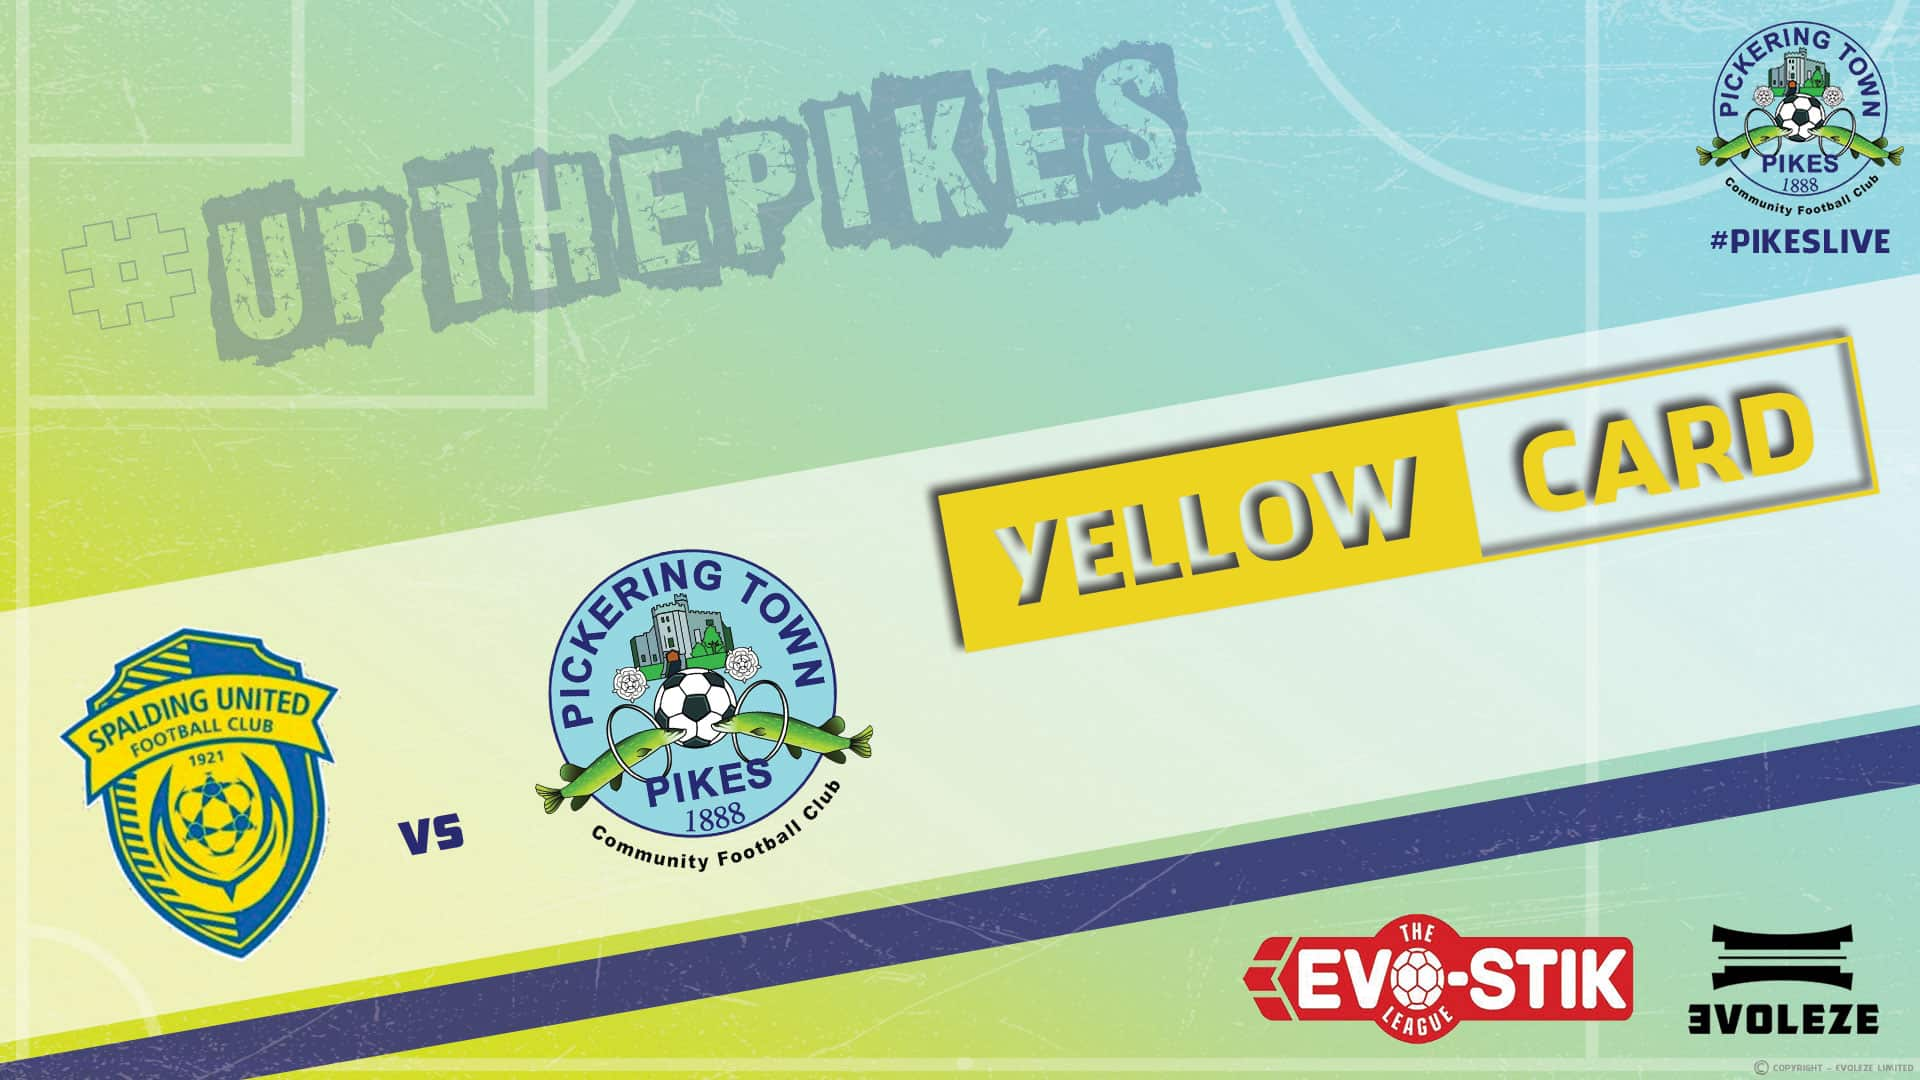 yellow card - Pickering Town FC